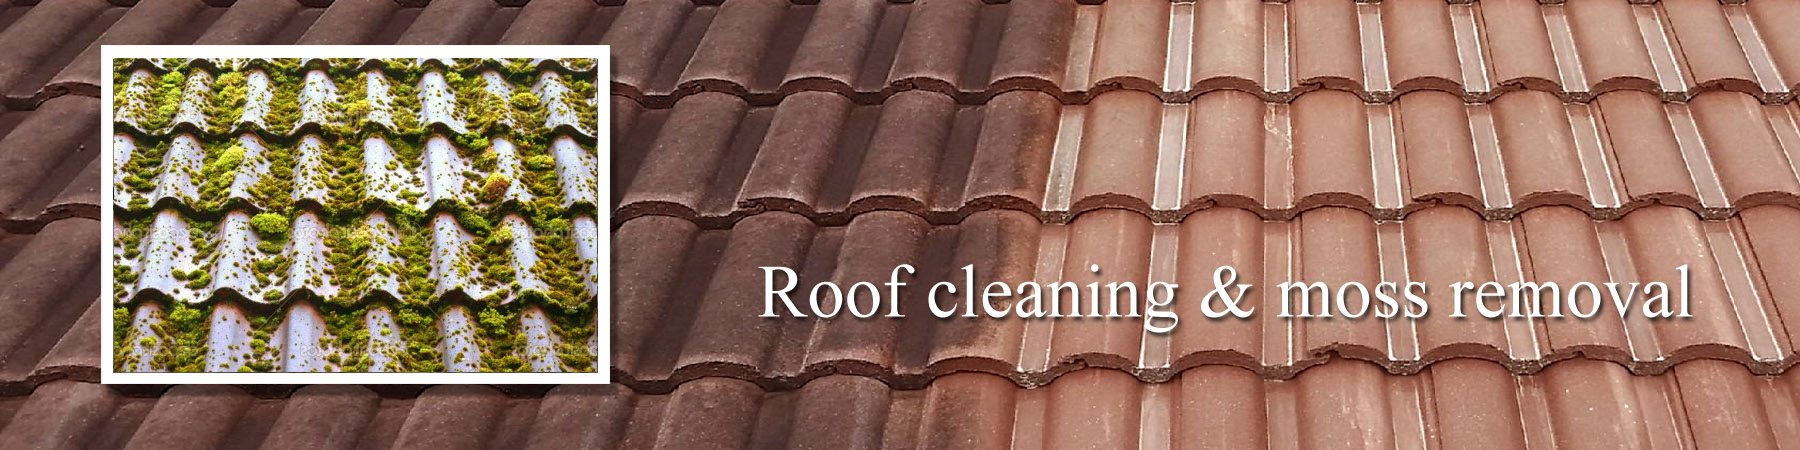 J.R. Roof Cleaning Mill Hill roof moss removal repairs & coating J R Cleaning